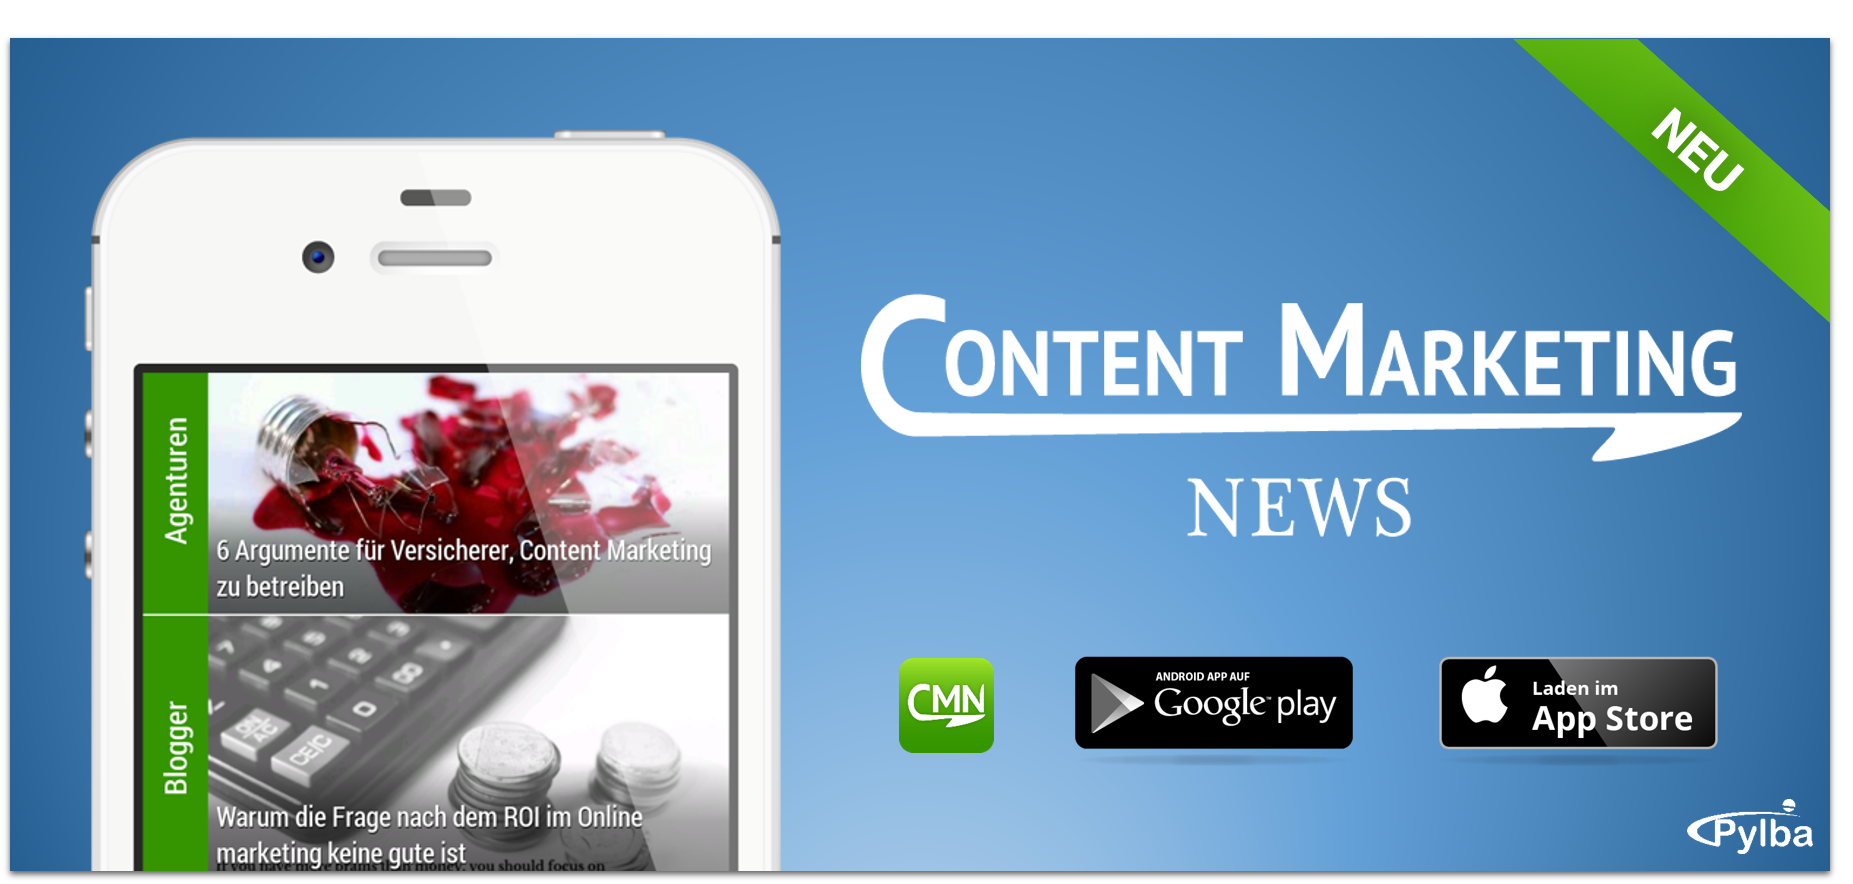 Neu im App Store: Content Marketing News